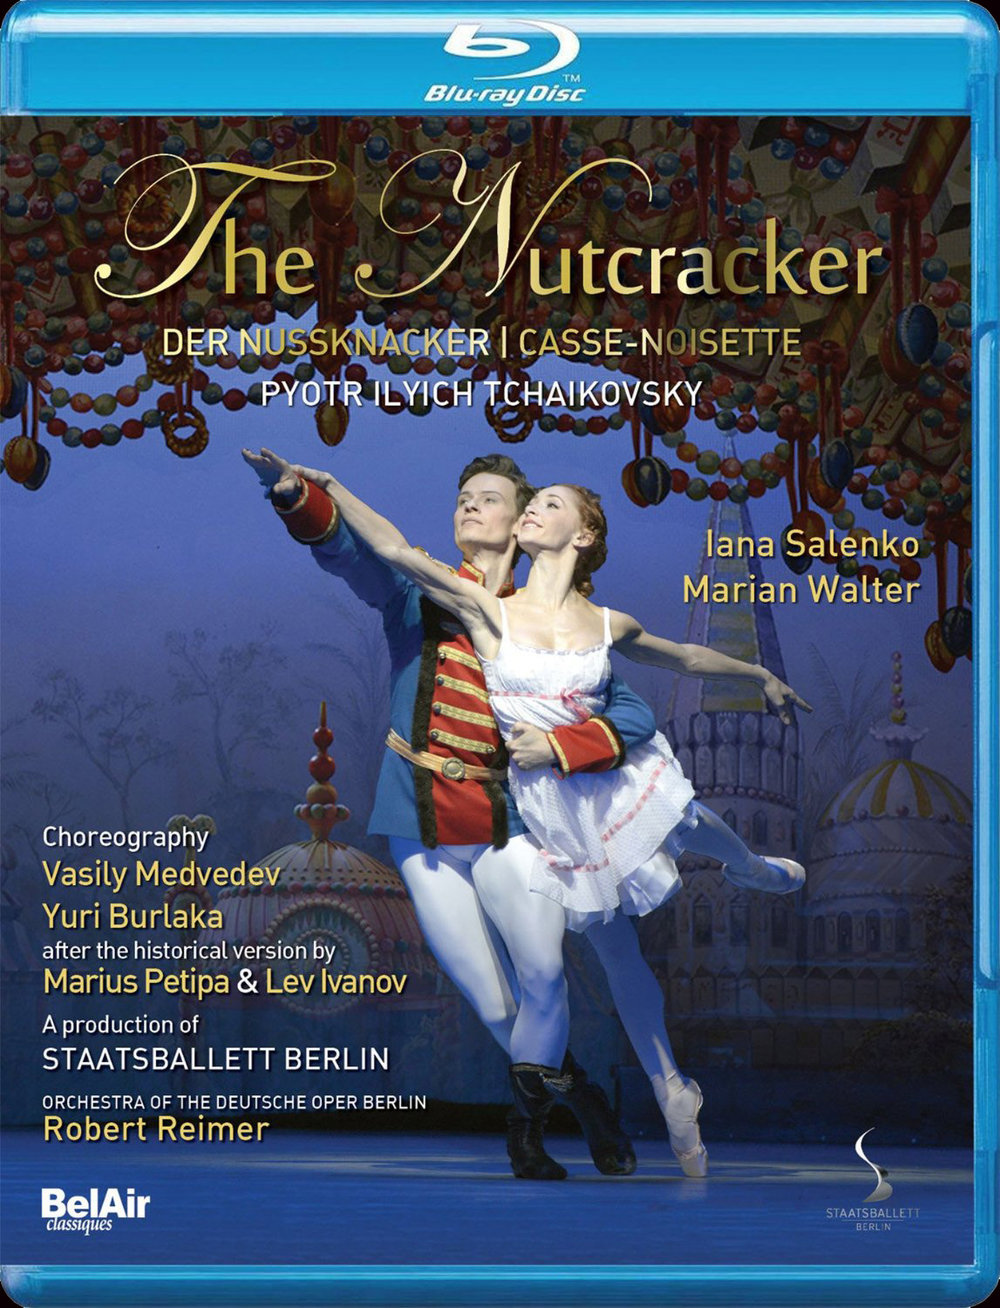 Nutcracker_bluray.jpg